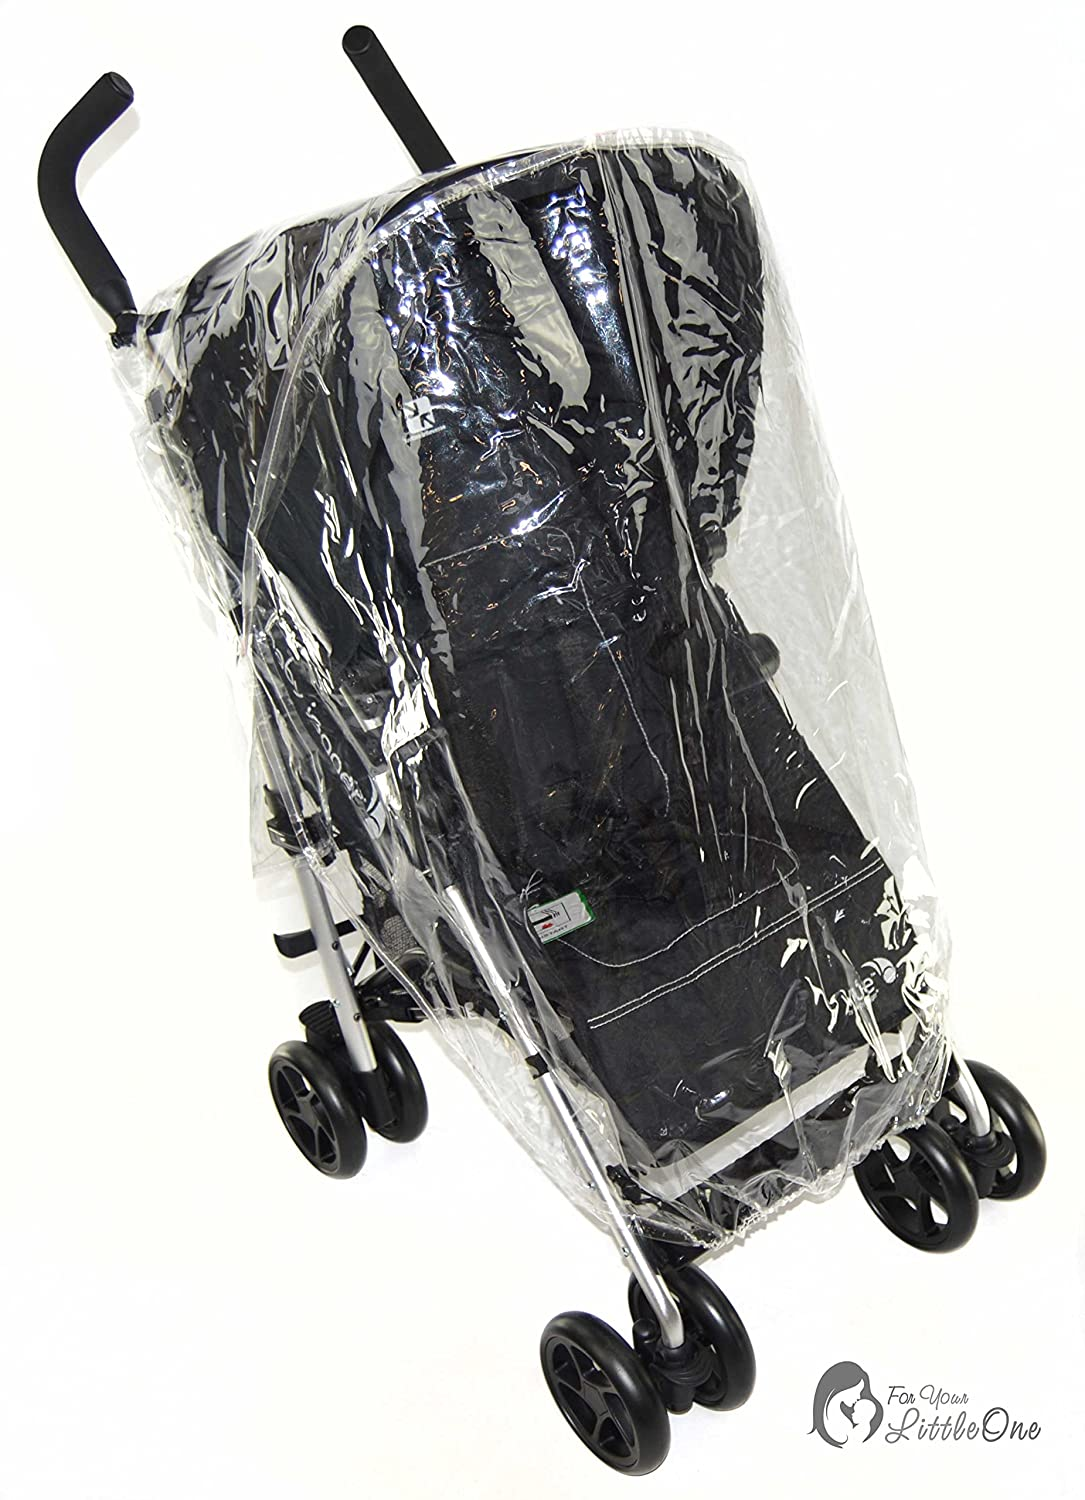 Protector de lluvia Compatible con Maclaren Techno XT For-Your-Little-One